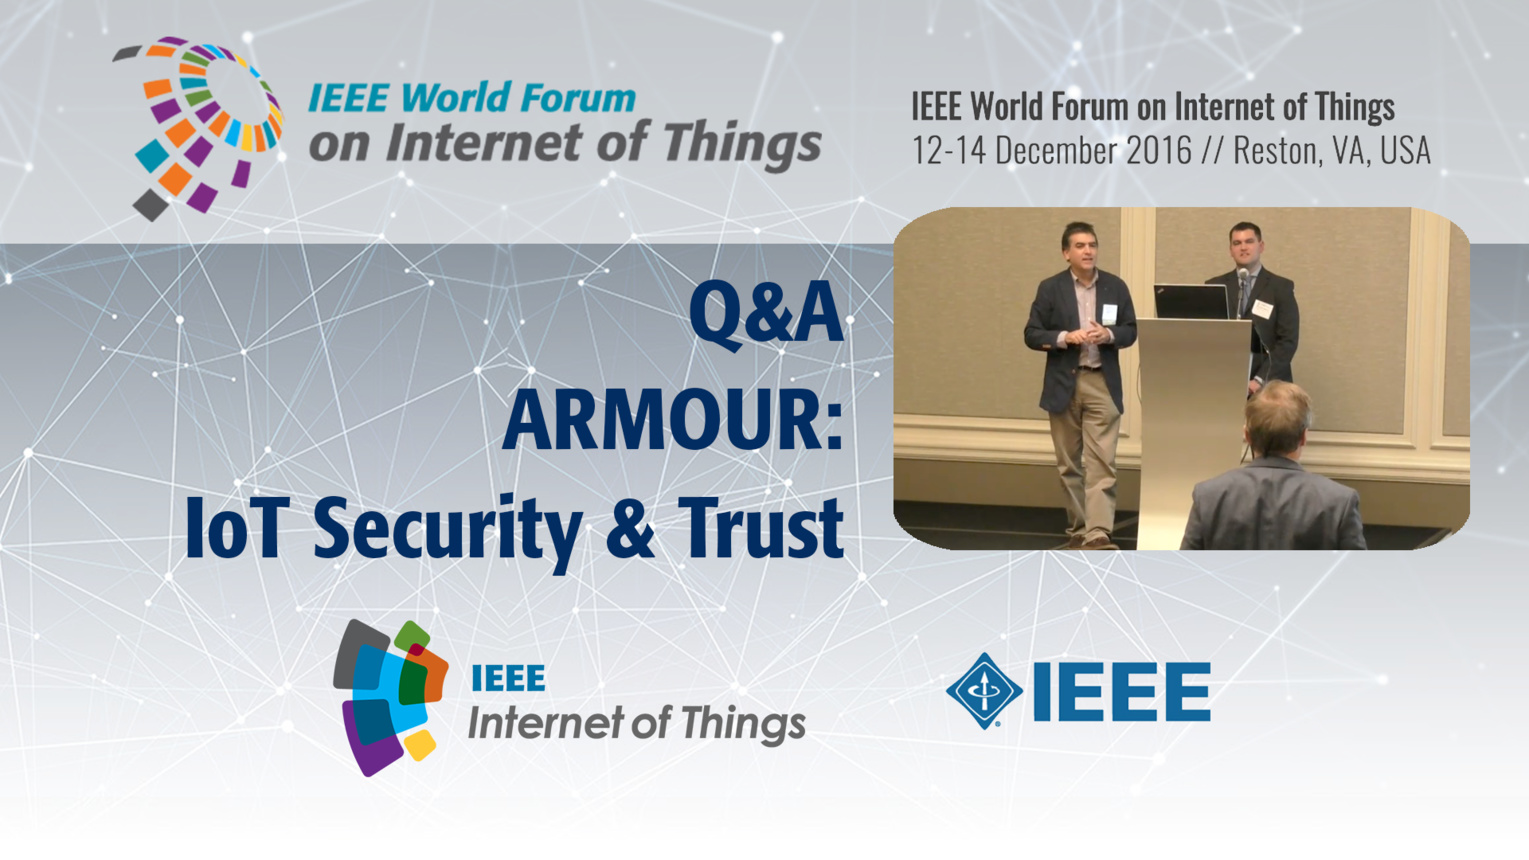 Q&A: ARMOUR and Security Certification: WF-IoT 2016